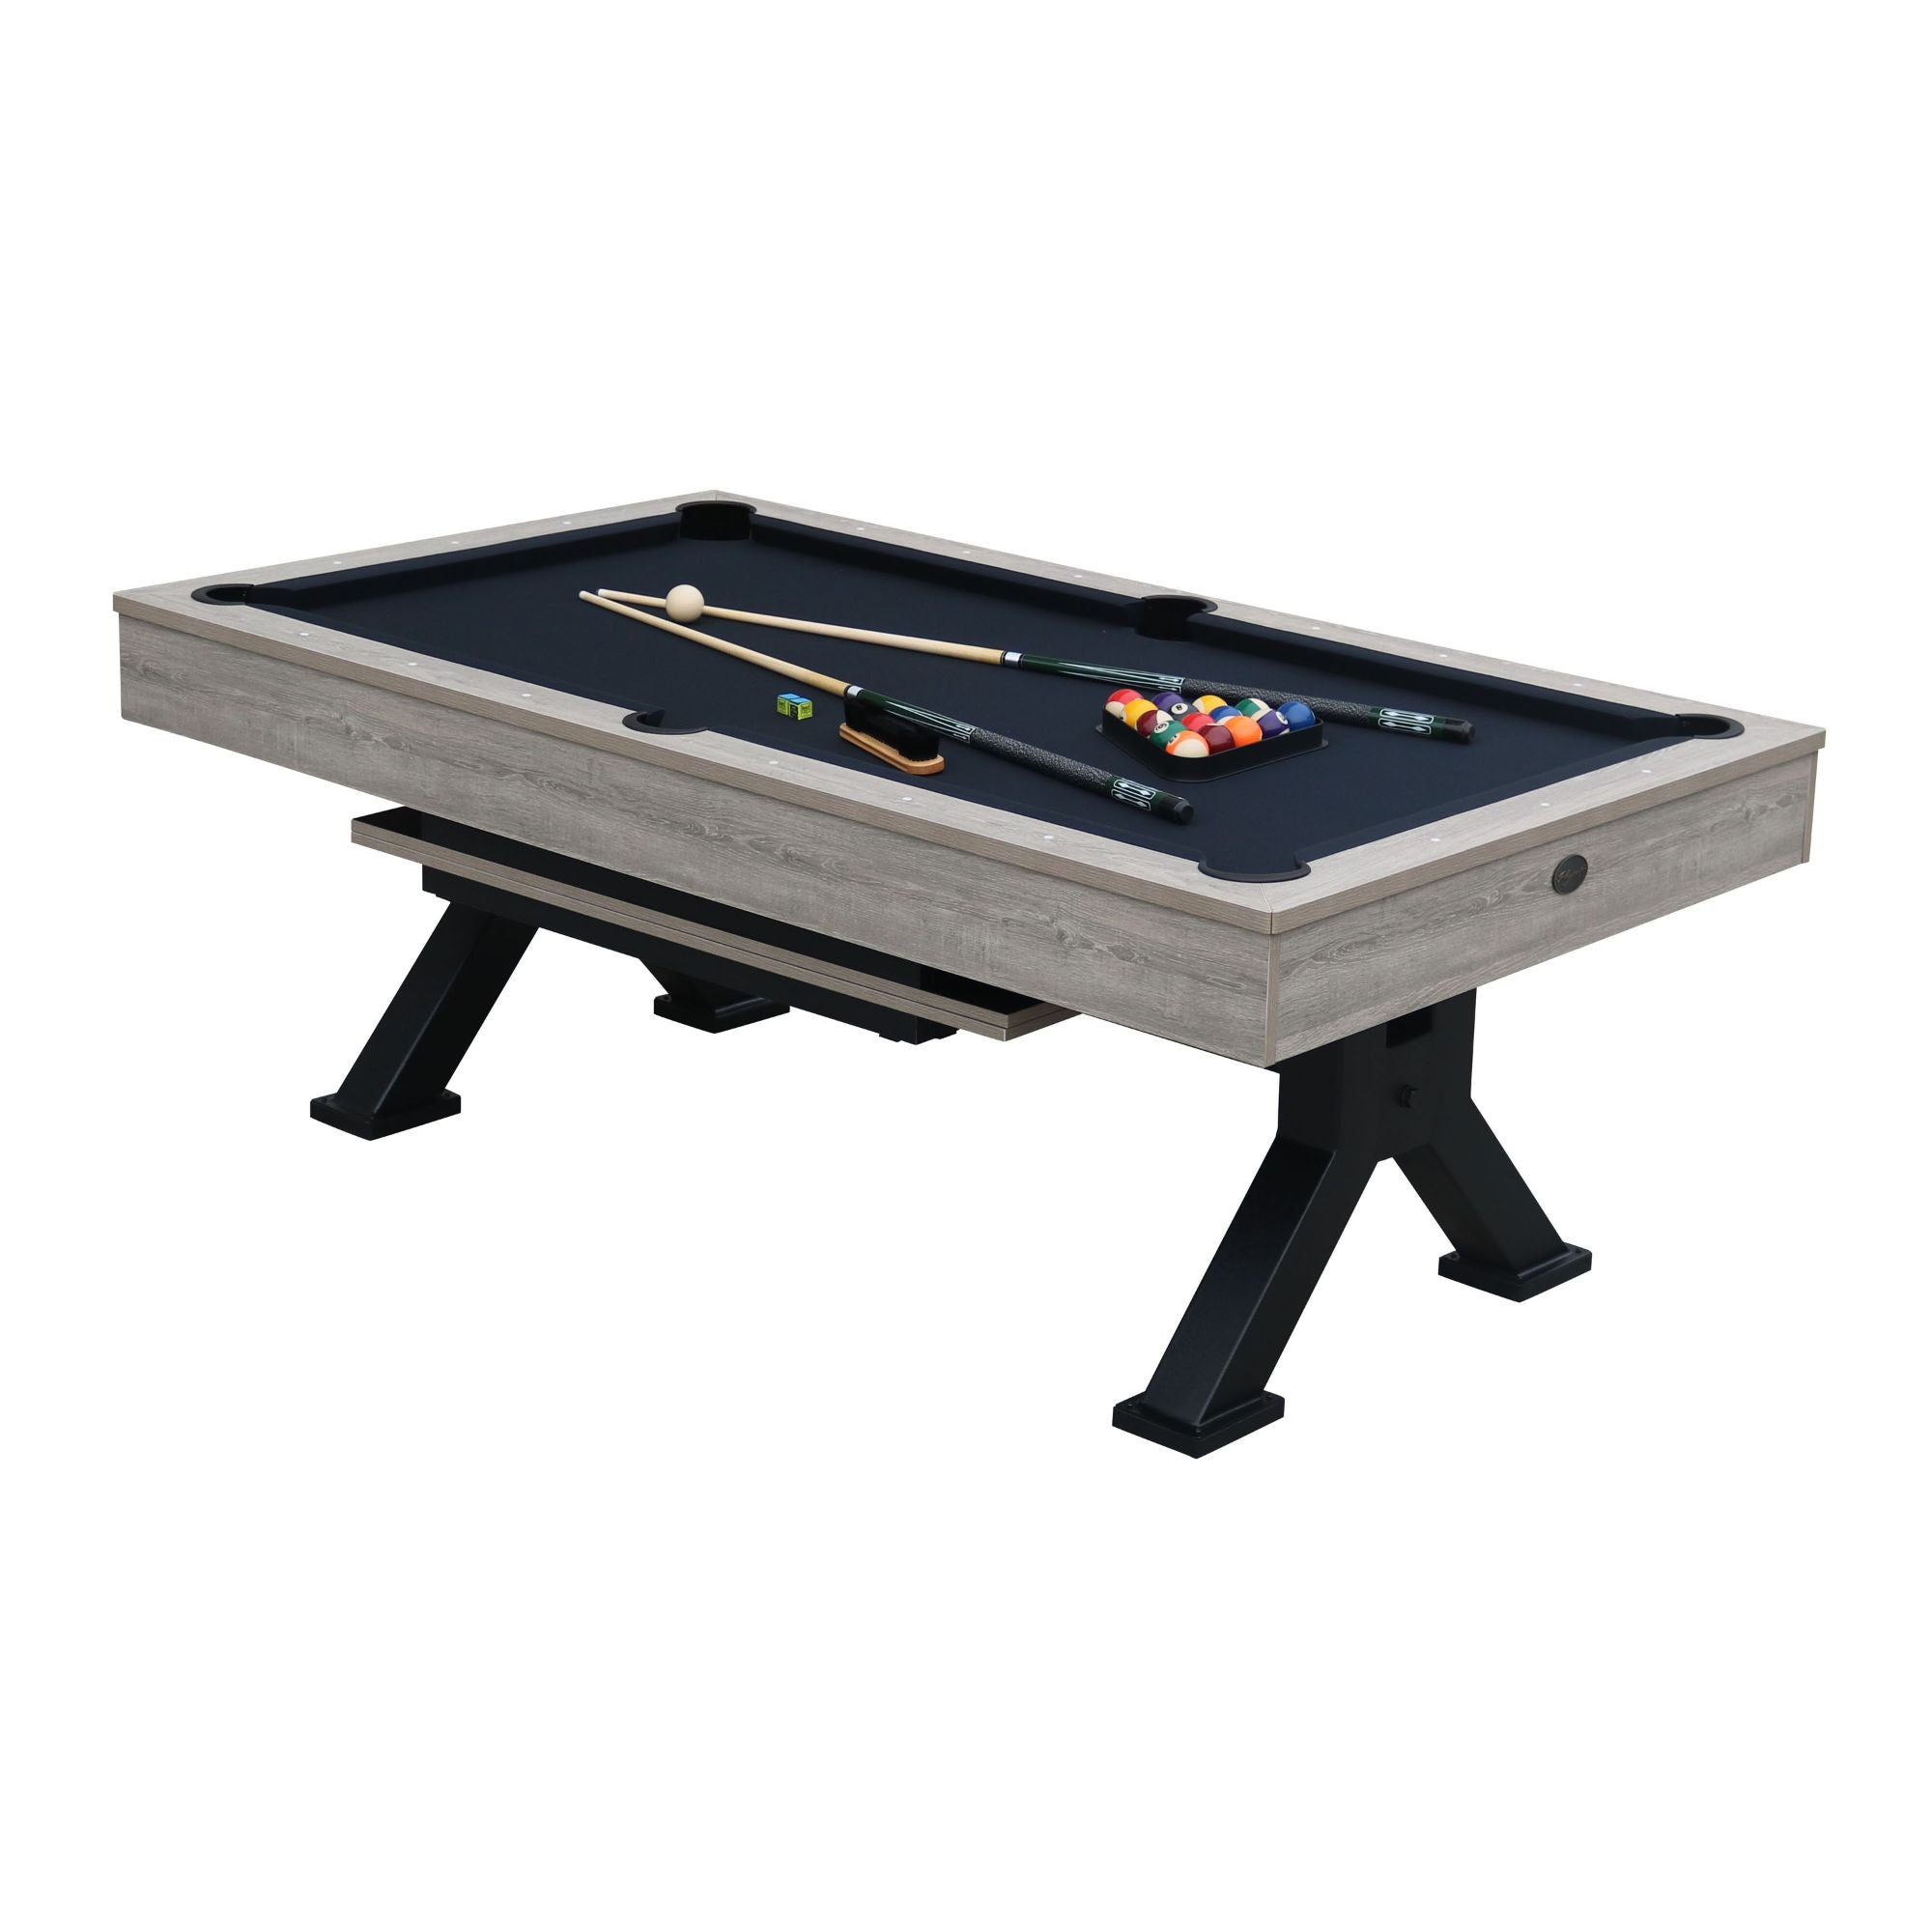 Playcraft Black Canyon 7' Pool Table with Dining Top - Gaming Blaze